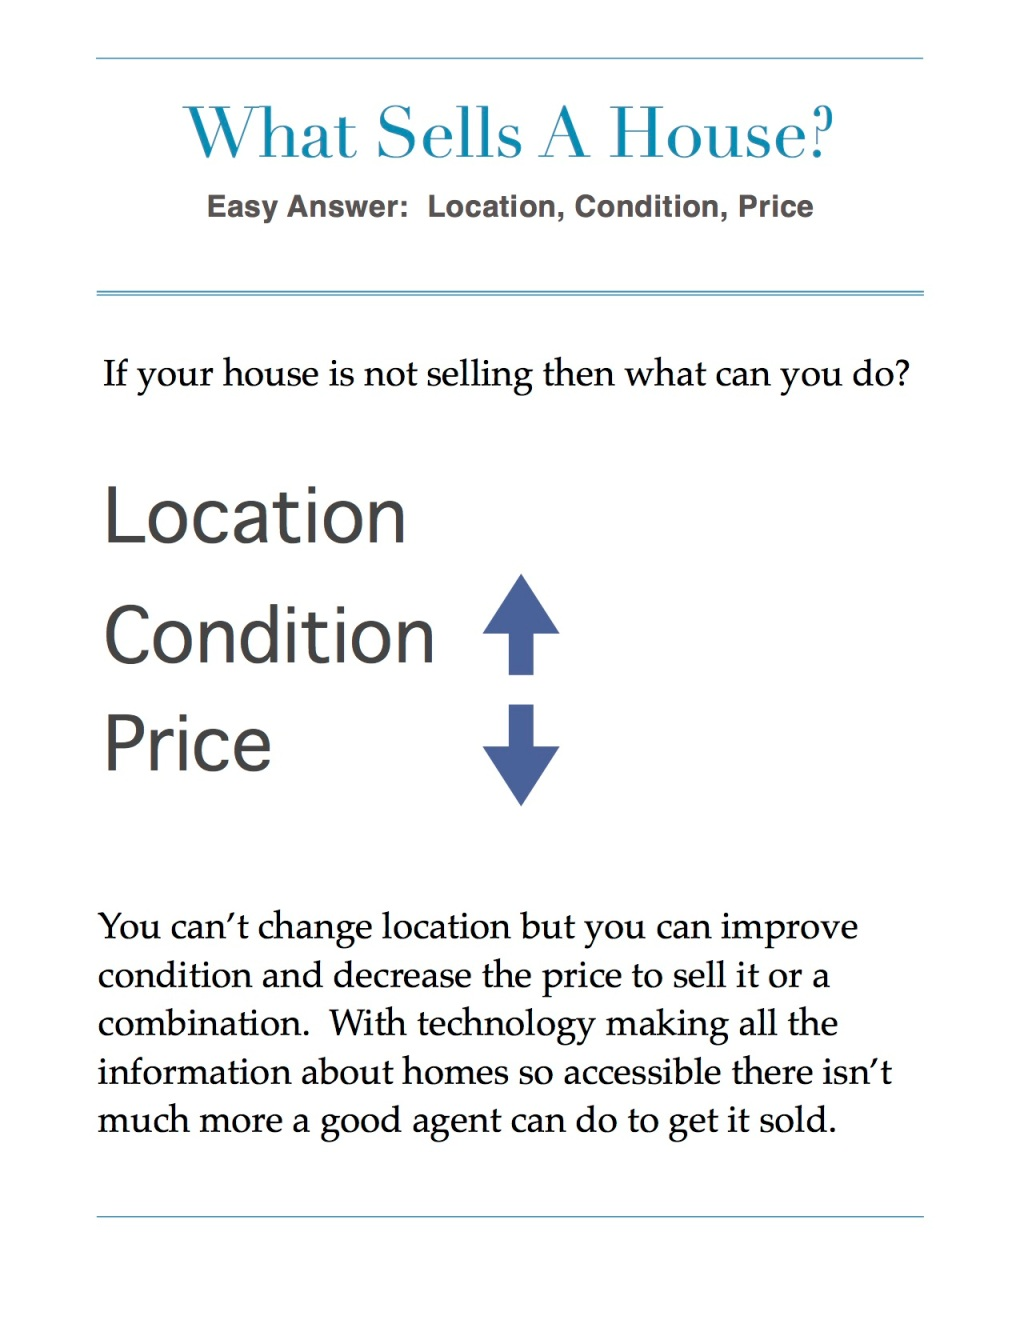 What sells a house?